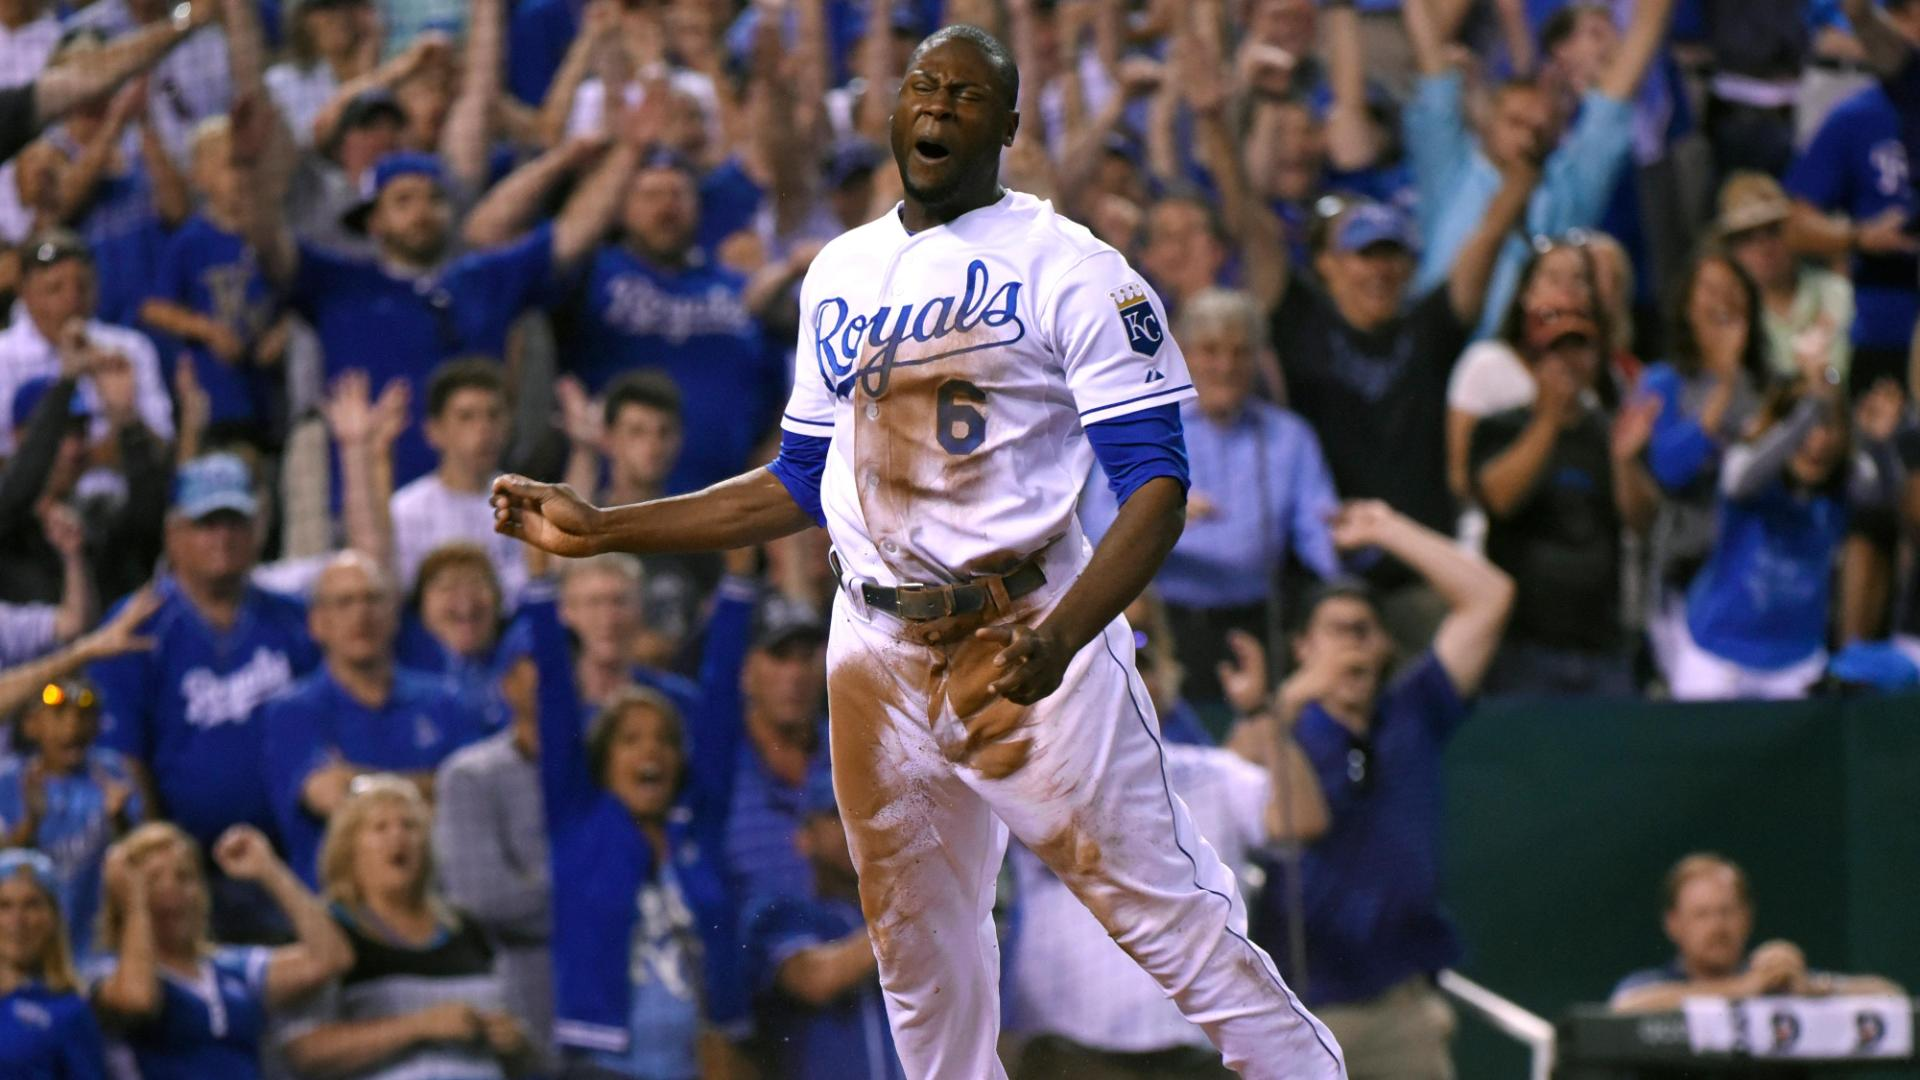 Royals walk off with extra-inning win